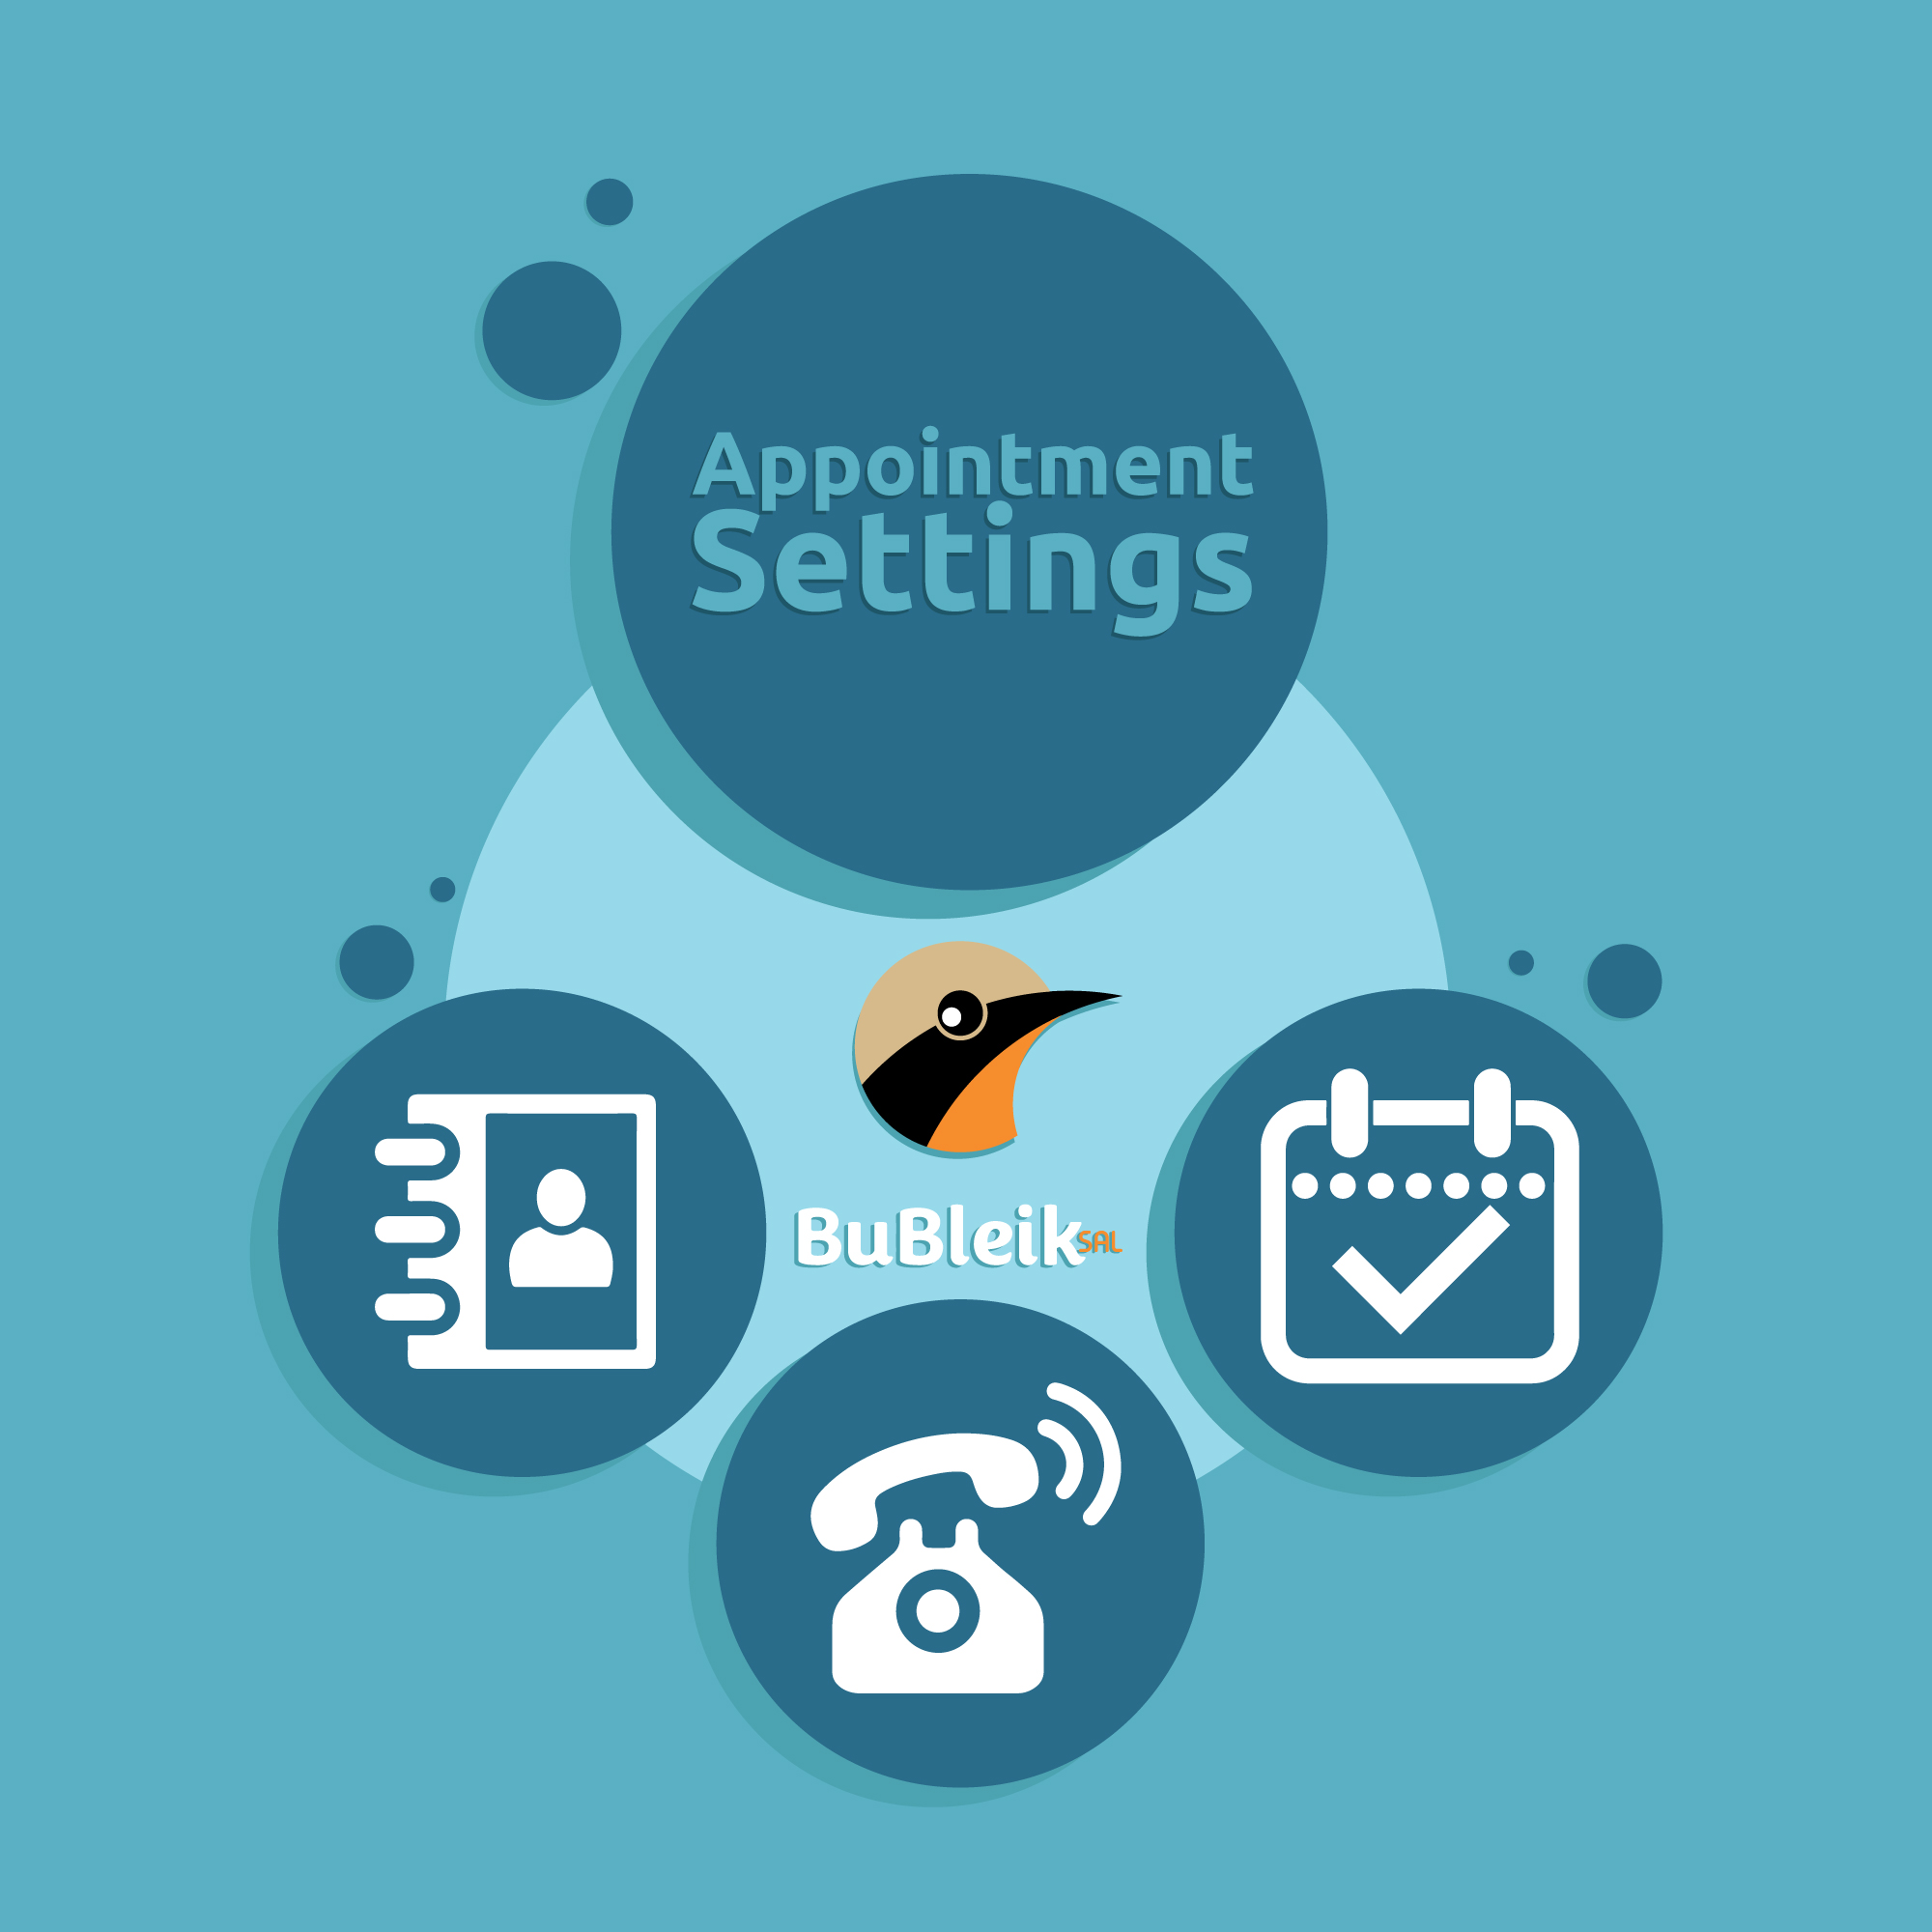 Appointment Settings